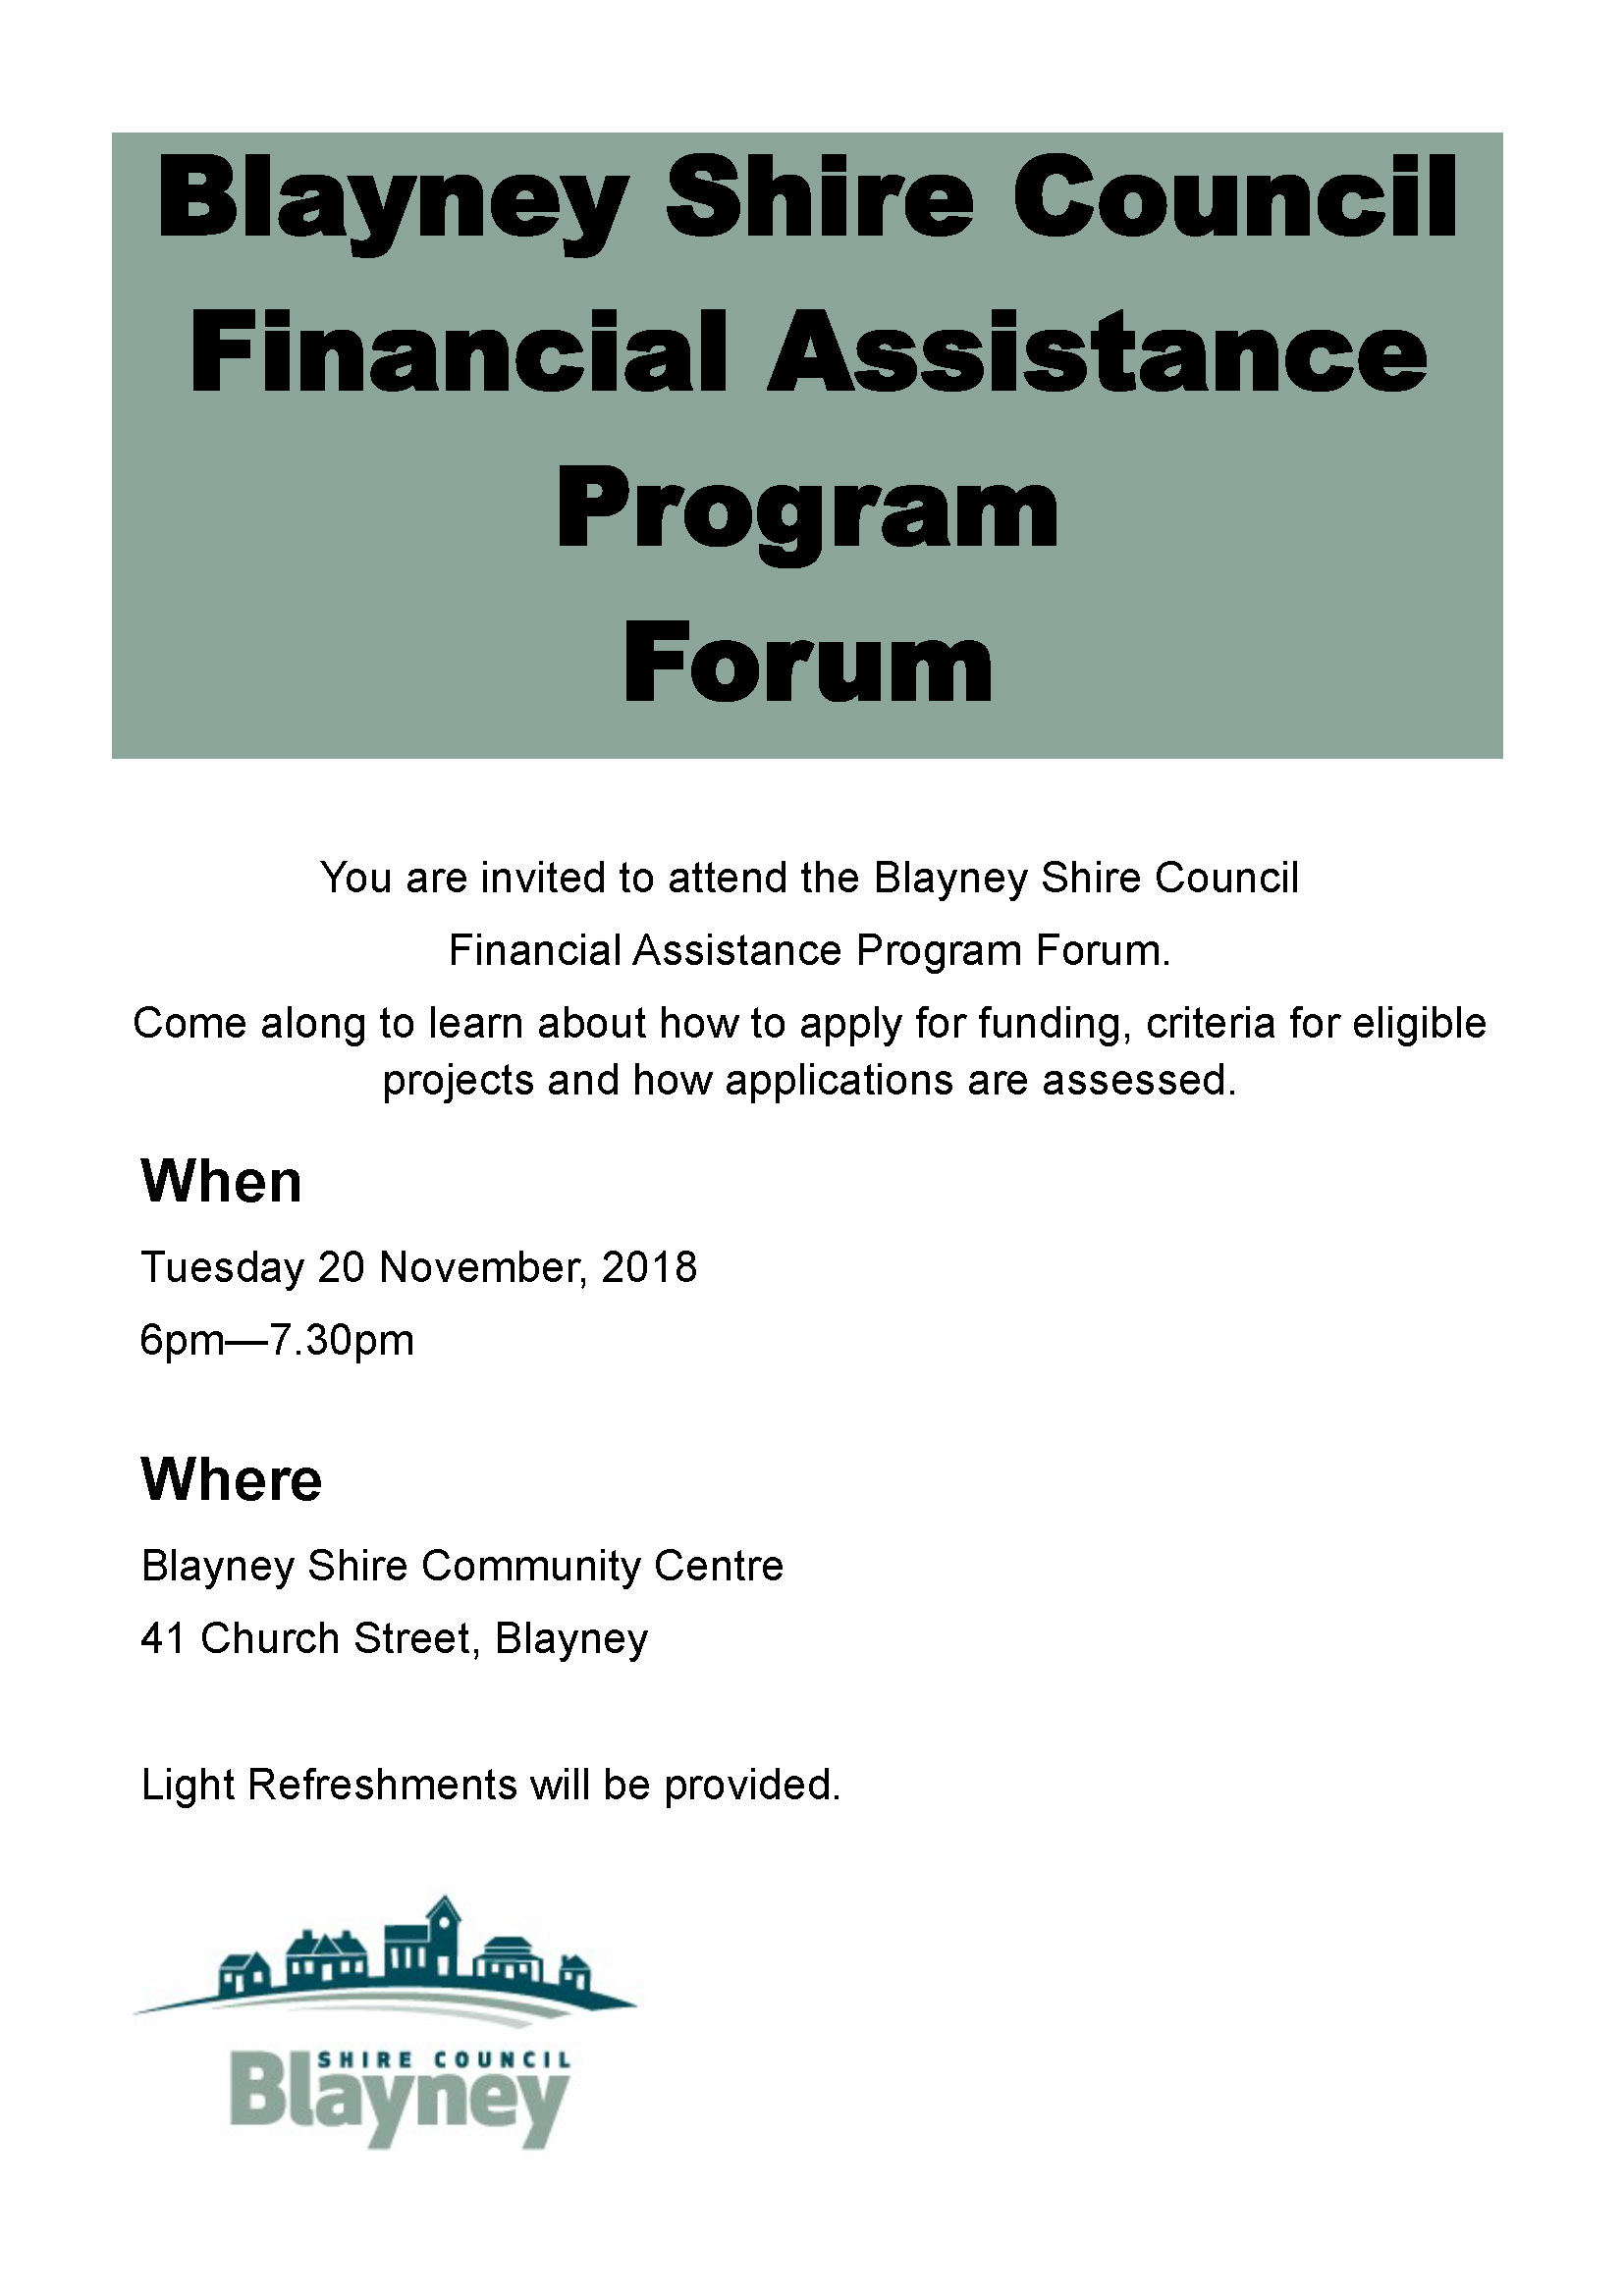 Blayney Shire Council Financial Assistance Forum Invitation and Flyer_Page_1